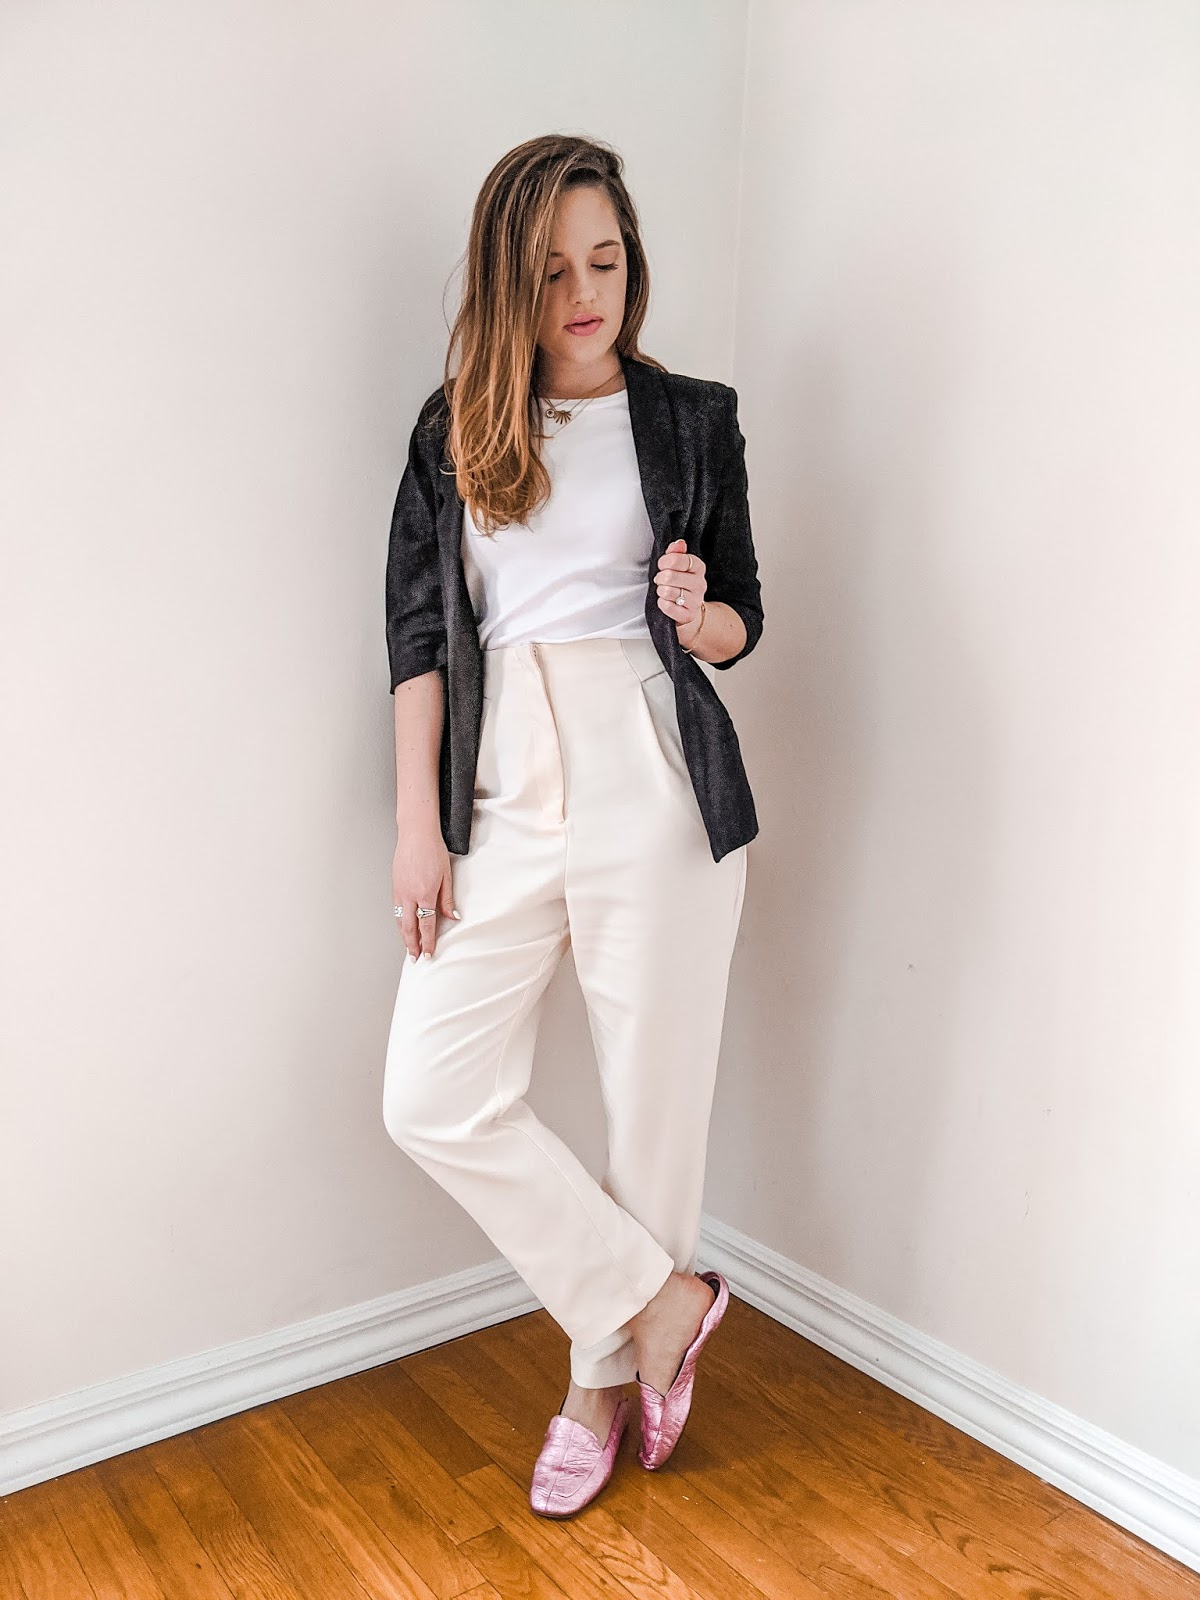 Nyc fashion blogger Kathleen Harper wearing a simple work outfit.